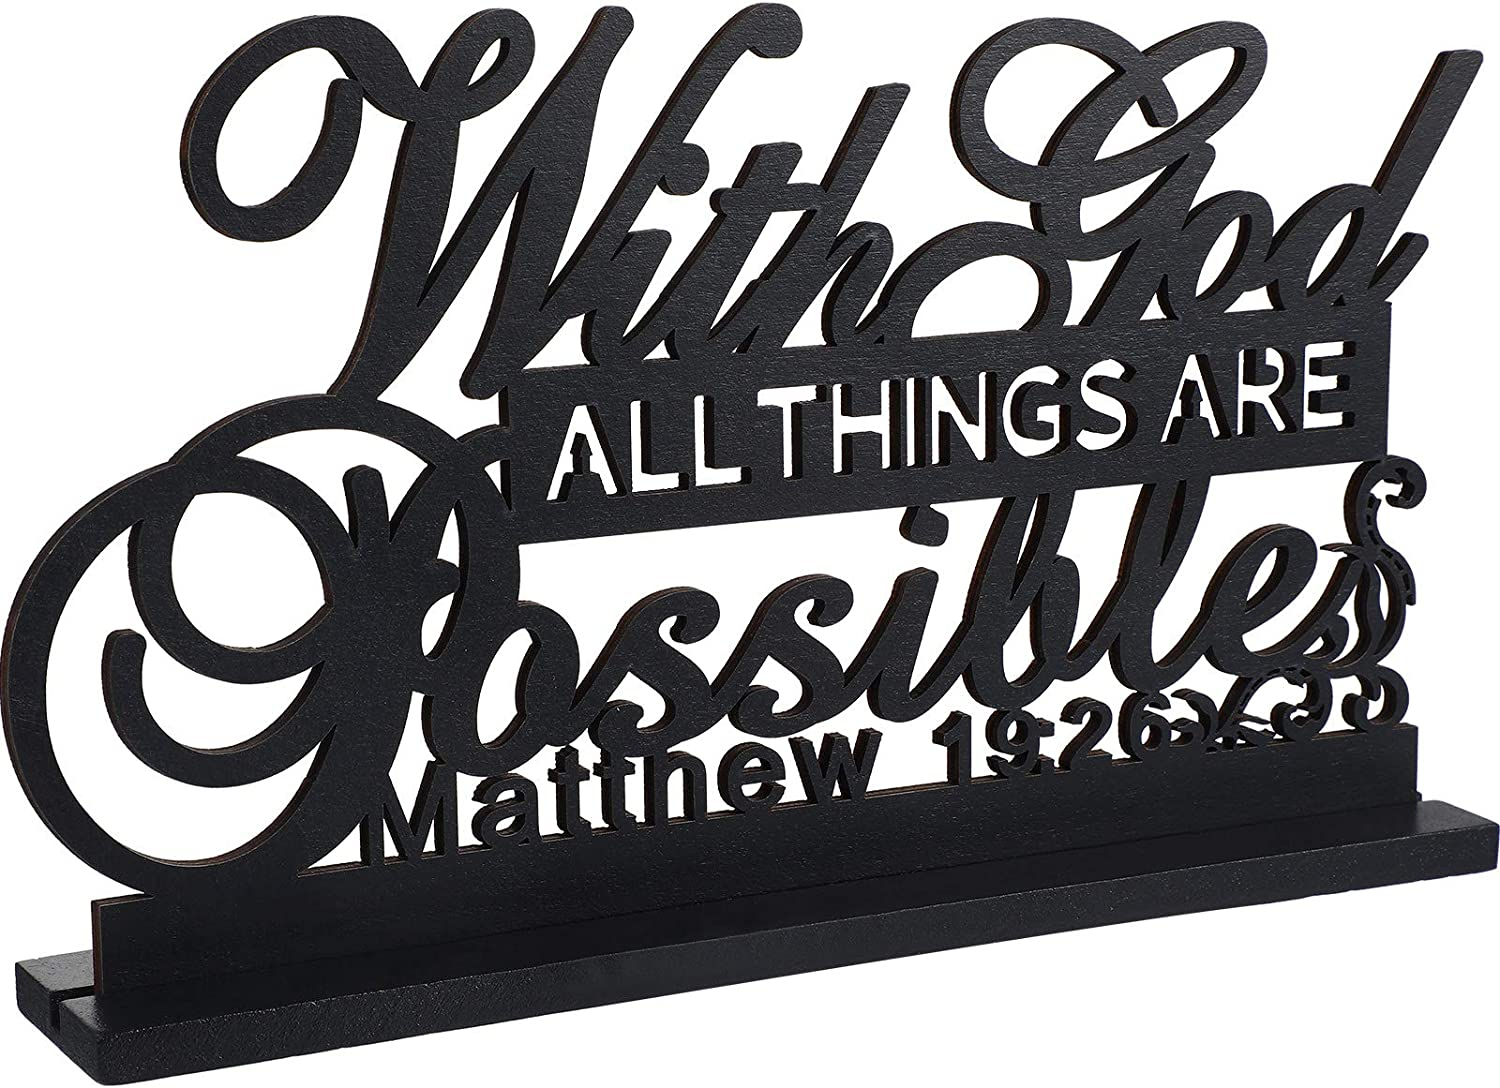 Inspirational Table Art with God All Things are Possible Positive Sign Home Table Decoration, Motivational Table Centerpieces Letter Sign Wooden for Faith Motivational Decoration Home, Office